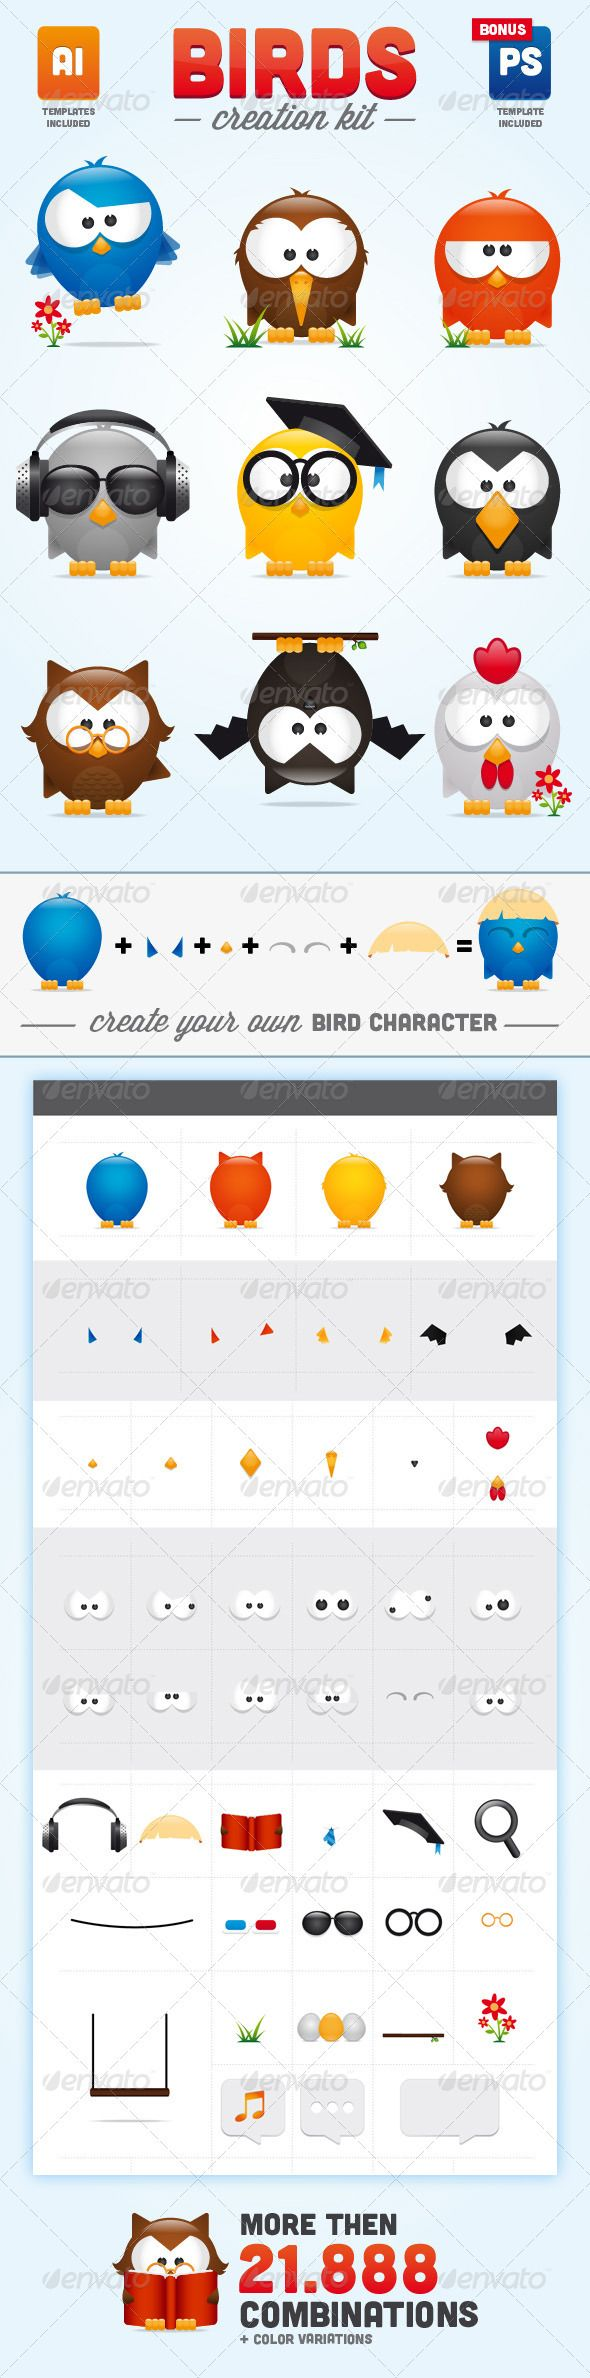 Birds Creation Kit - Animals Characters I download http://graphicriver.net/item/birds-creation-kit/2404713?ref=imanvector